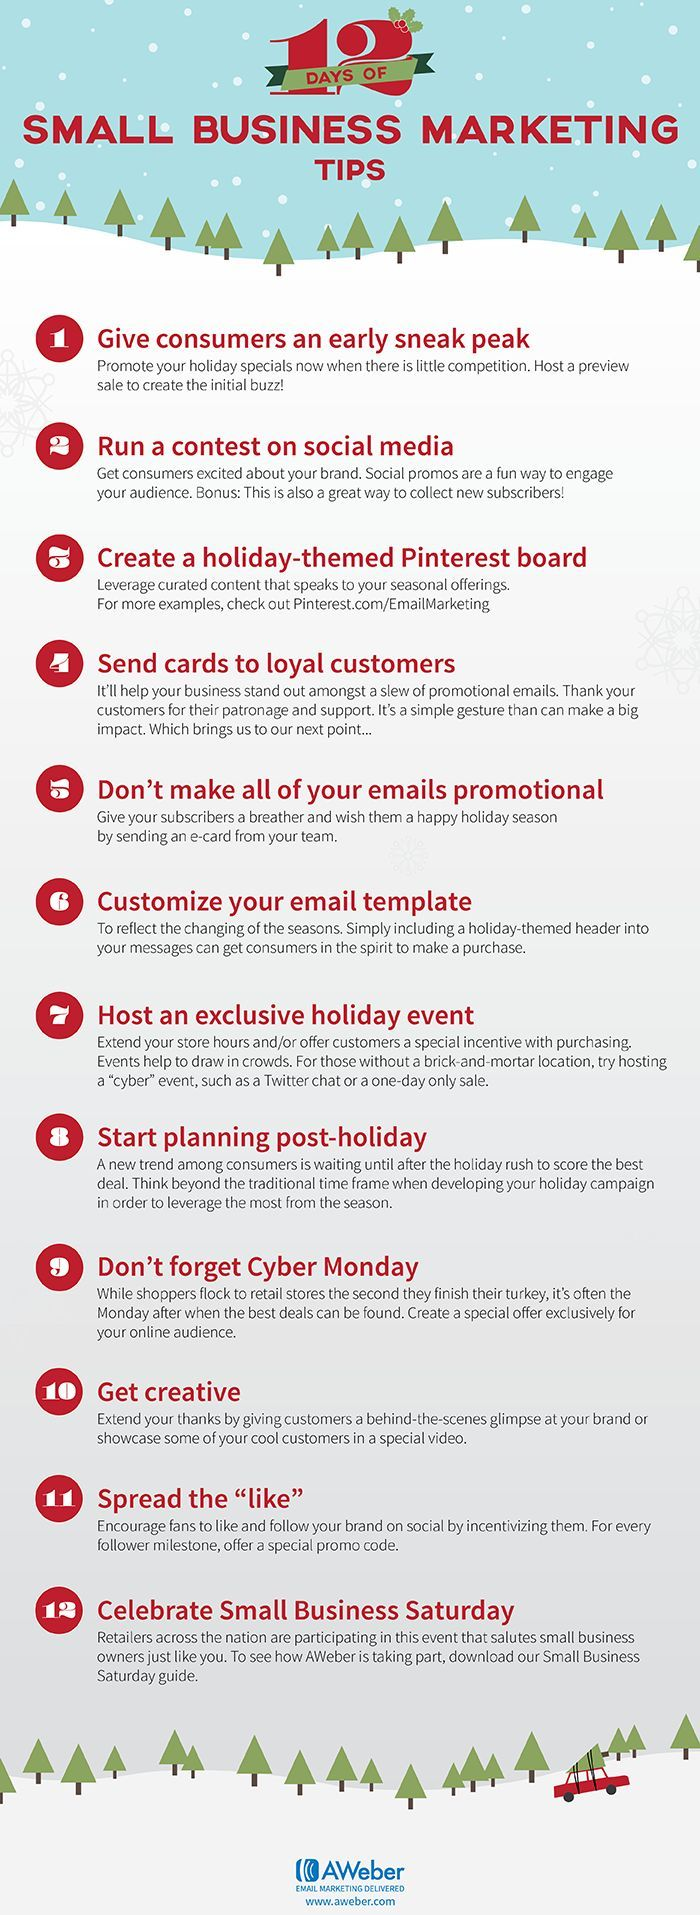 "12 Days of Holiday Marketing Tips for Small Businesses <a class=""pintag"" href=""/explore/infographic/"" title=""#infographic explore Pinterest"">#infographic</a>"